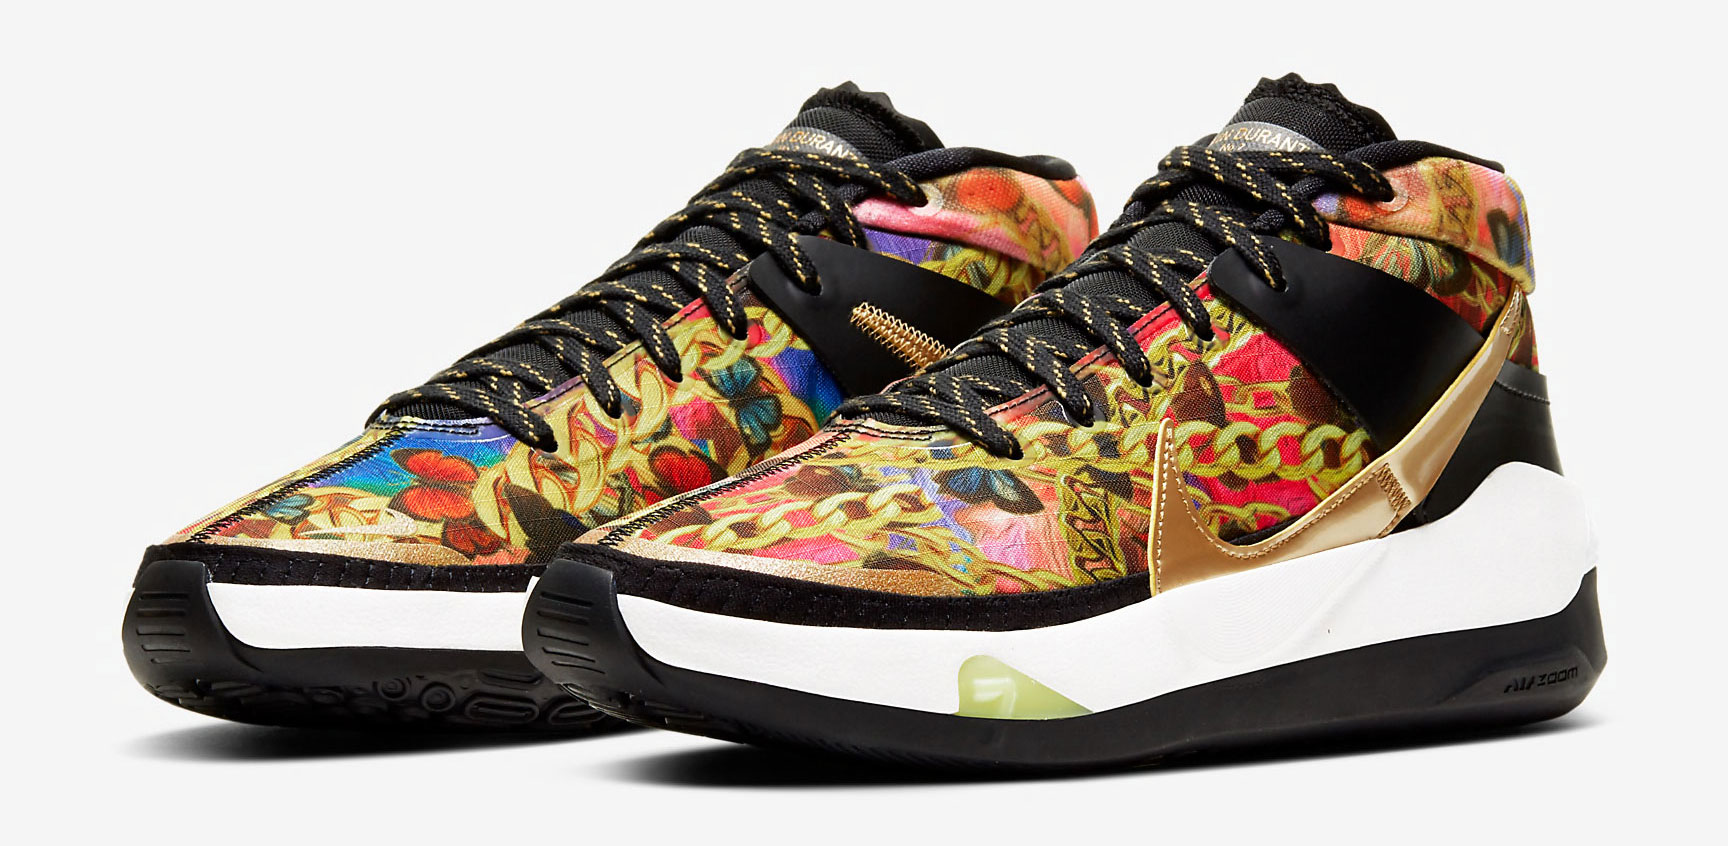 nike-kd-13-butterflies-and-chains